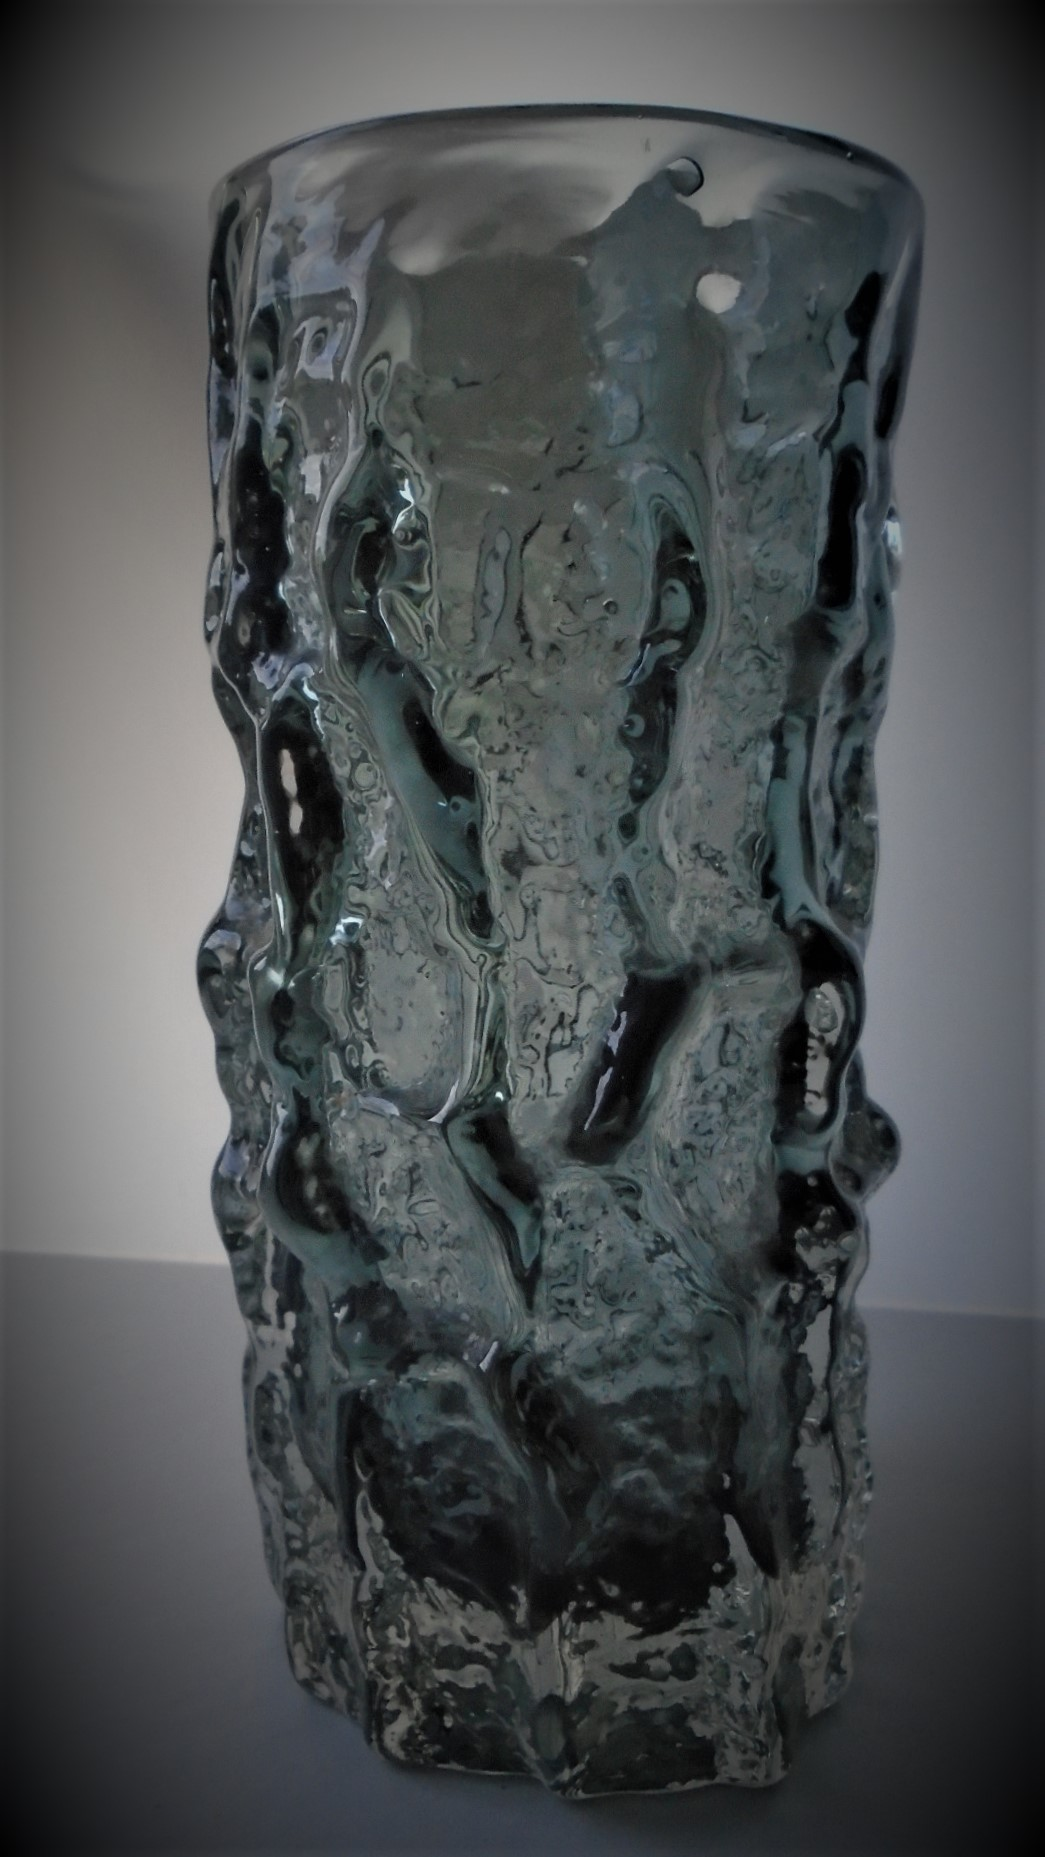 Super condition 6ins high vintage Whitefriars Bark Vase Catalogue No. 9690 in the Pewter colour way.